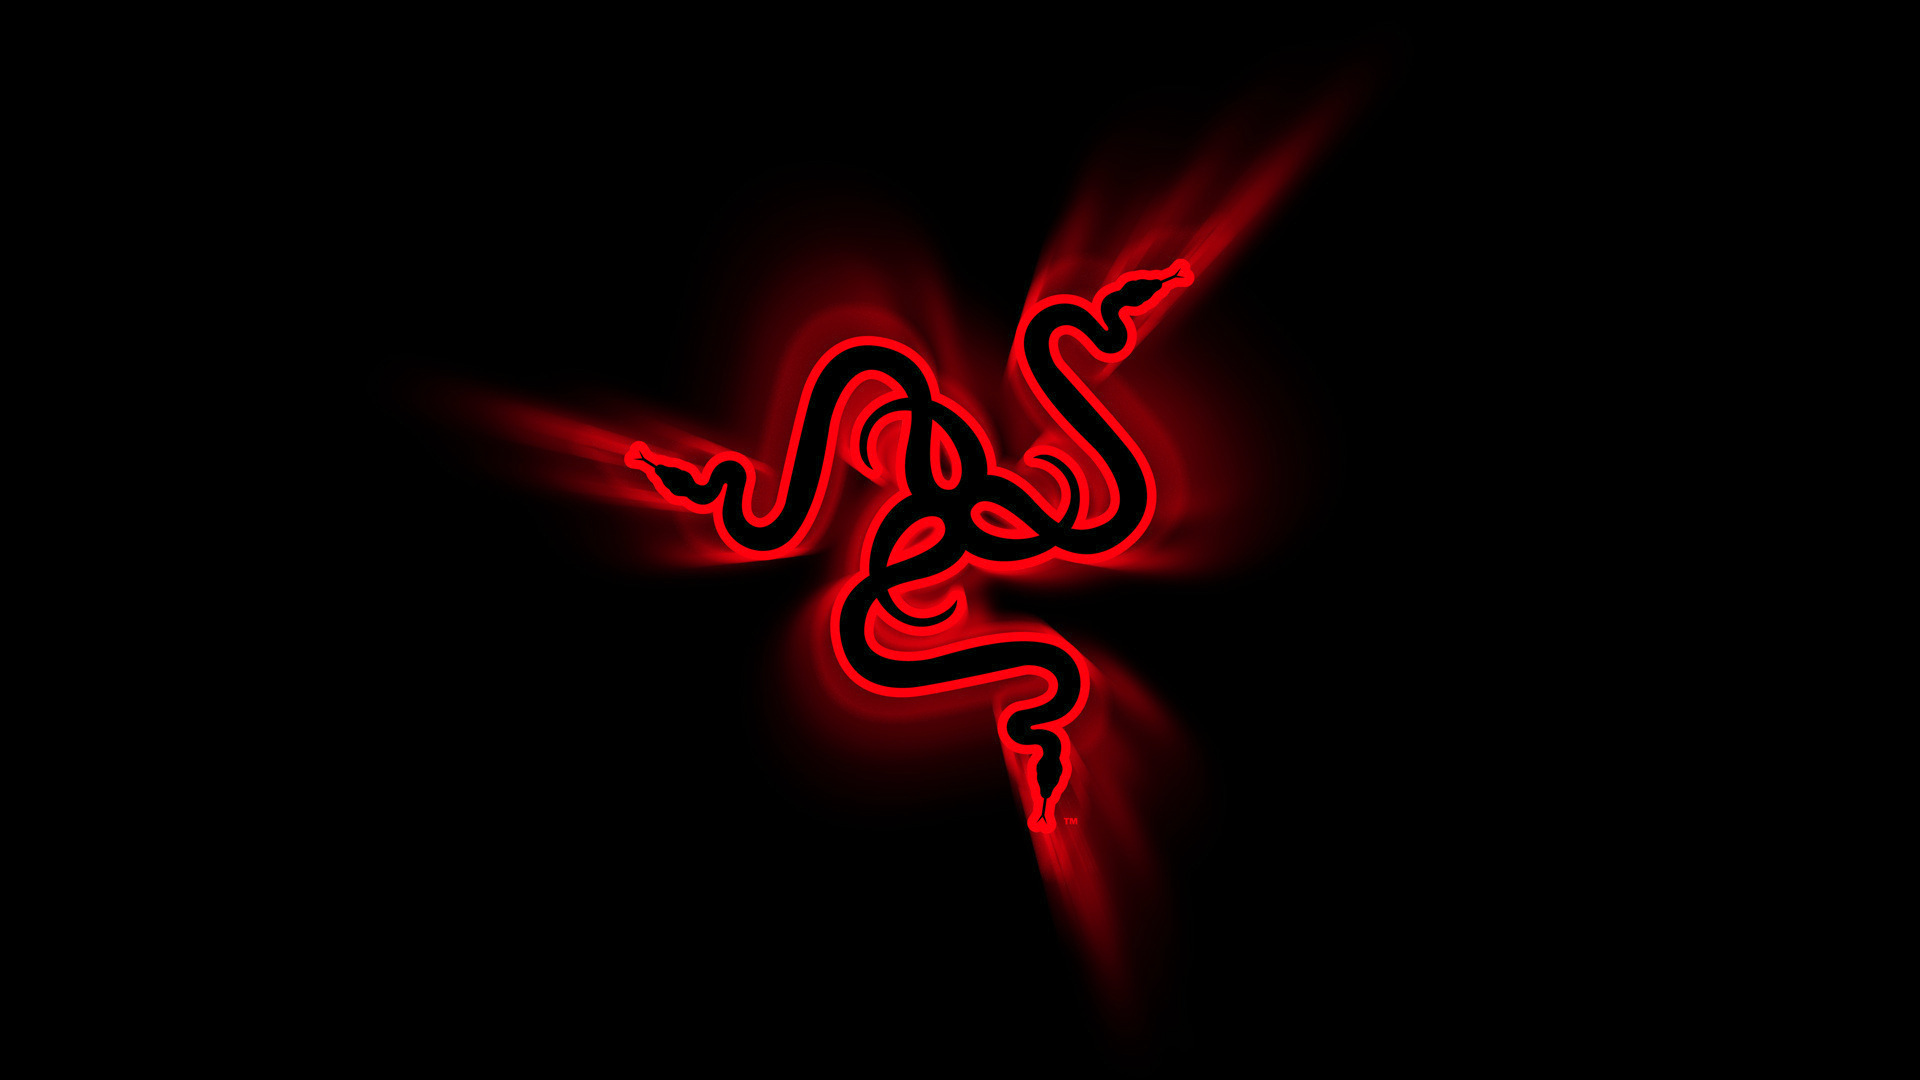 Red Razer Wallpaper 28 Images Red Razer Wallpaper Hd